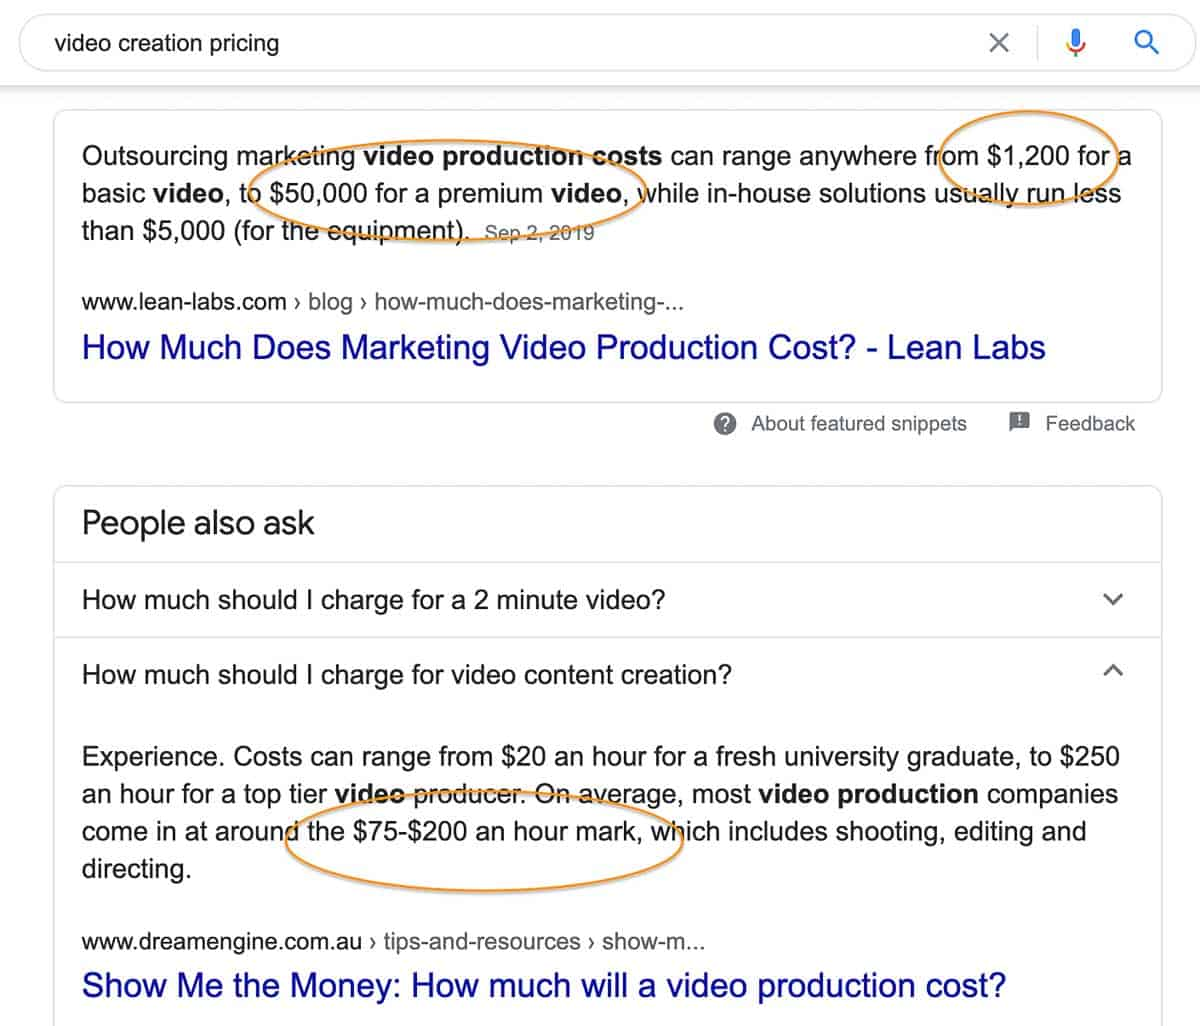 video creation pricing